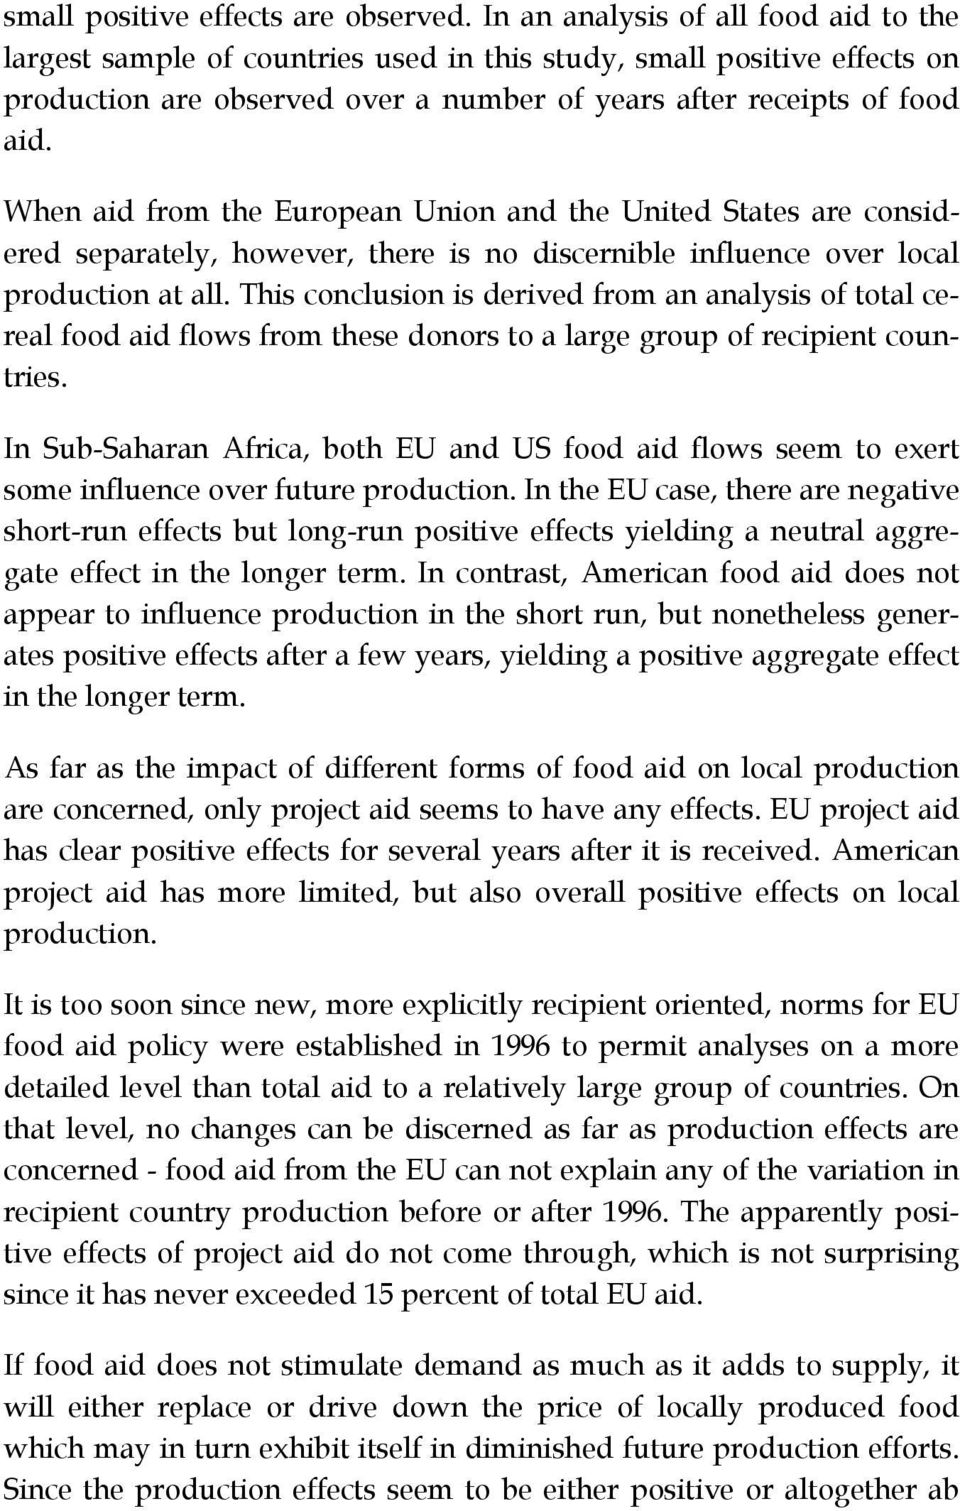 When aid from the European Union and the United States are considered separately, however, there is no discernible influence over local production at all.